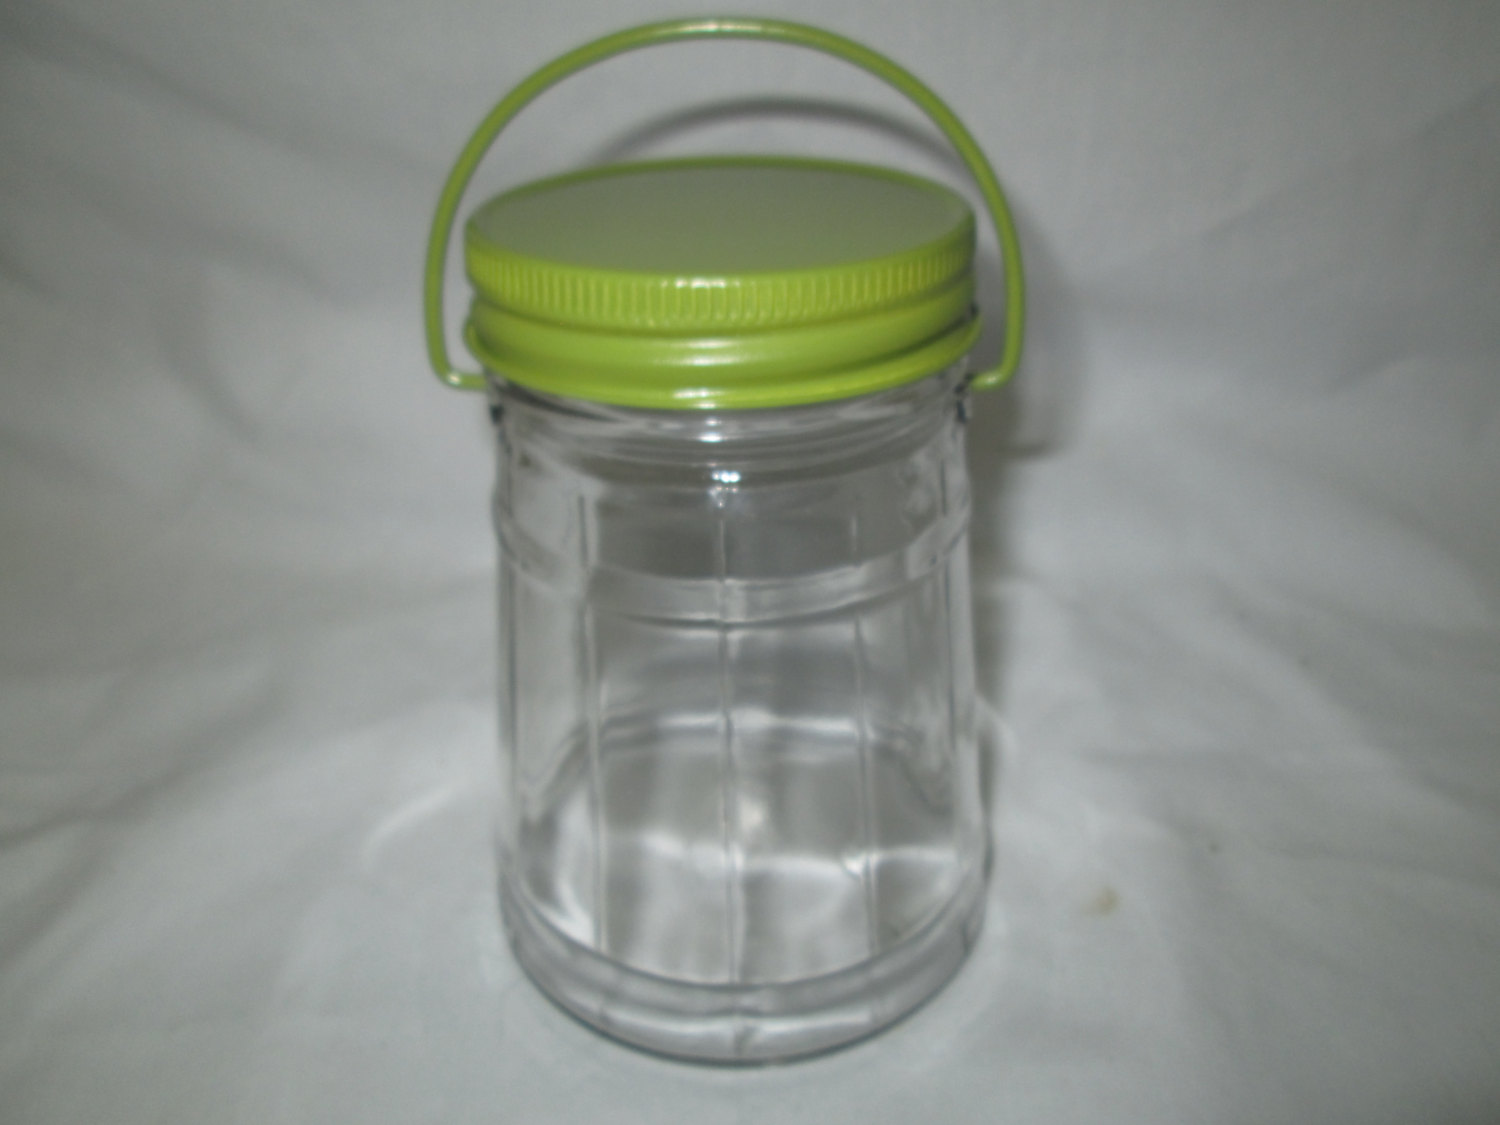 Vintage glass pickle jar with green metal lid and bail wire handle ribbed glass collectibles marbles dog cat treats buttons display storage